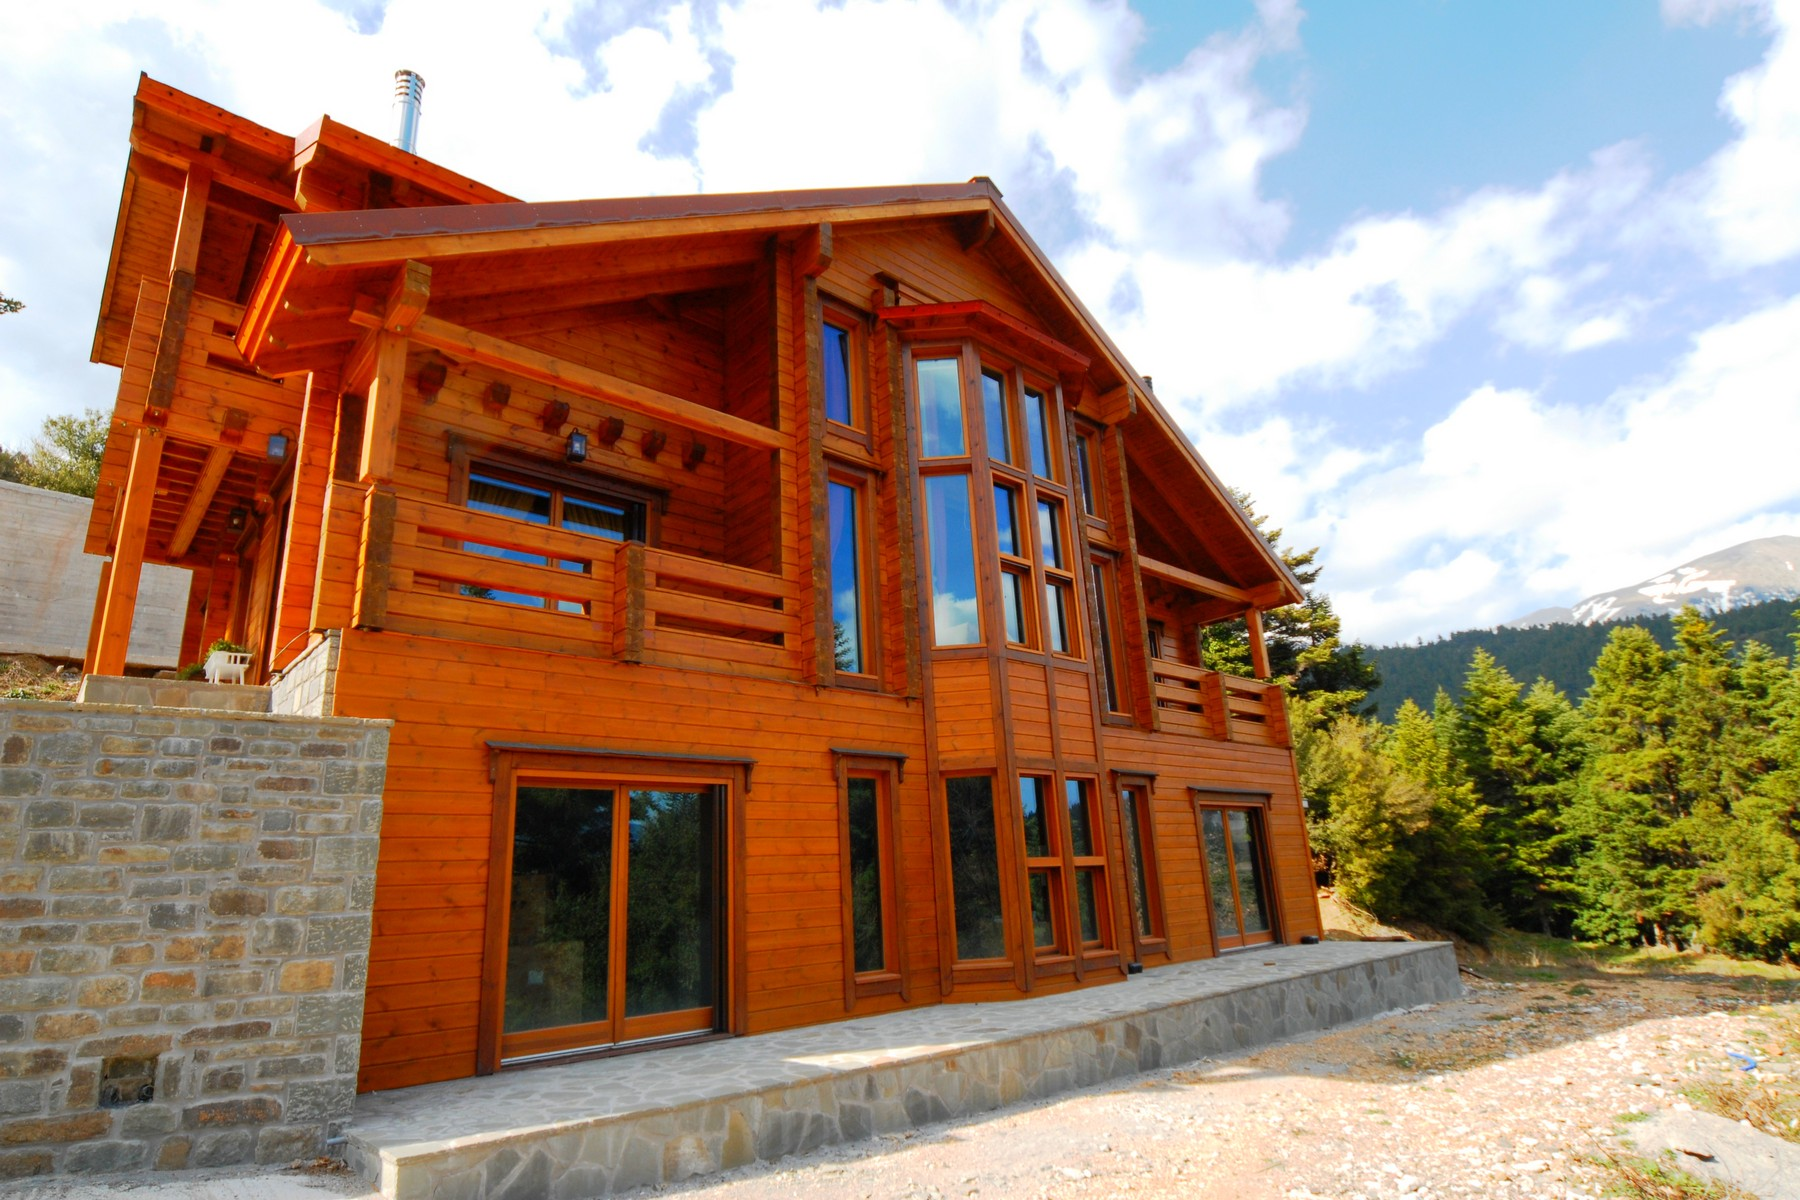 Single Family Home for Sale at Chalet in Karpenisi Karpenisi, Evritania Other Central Greece, Central Greece, 36100 Greece